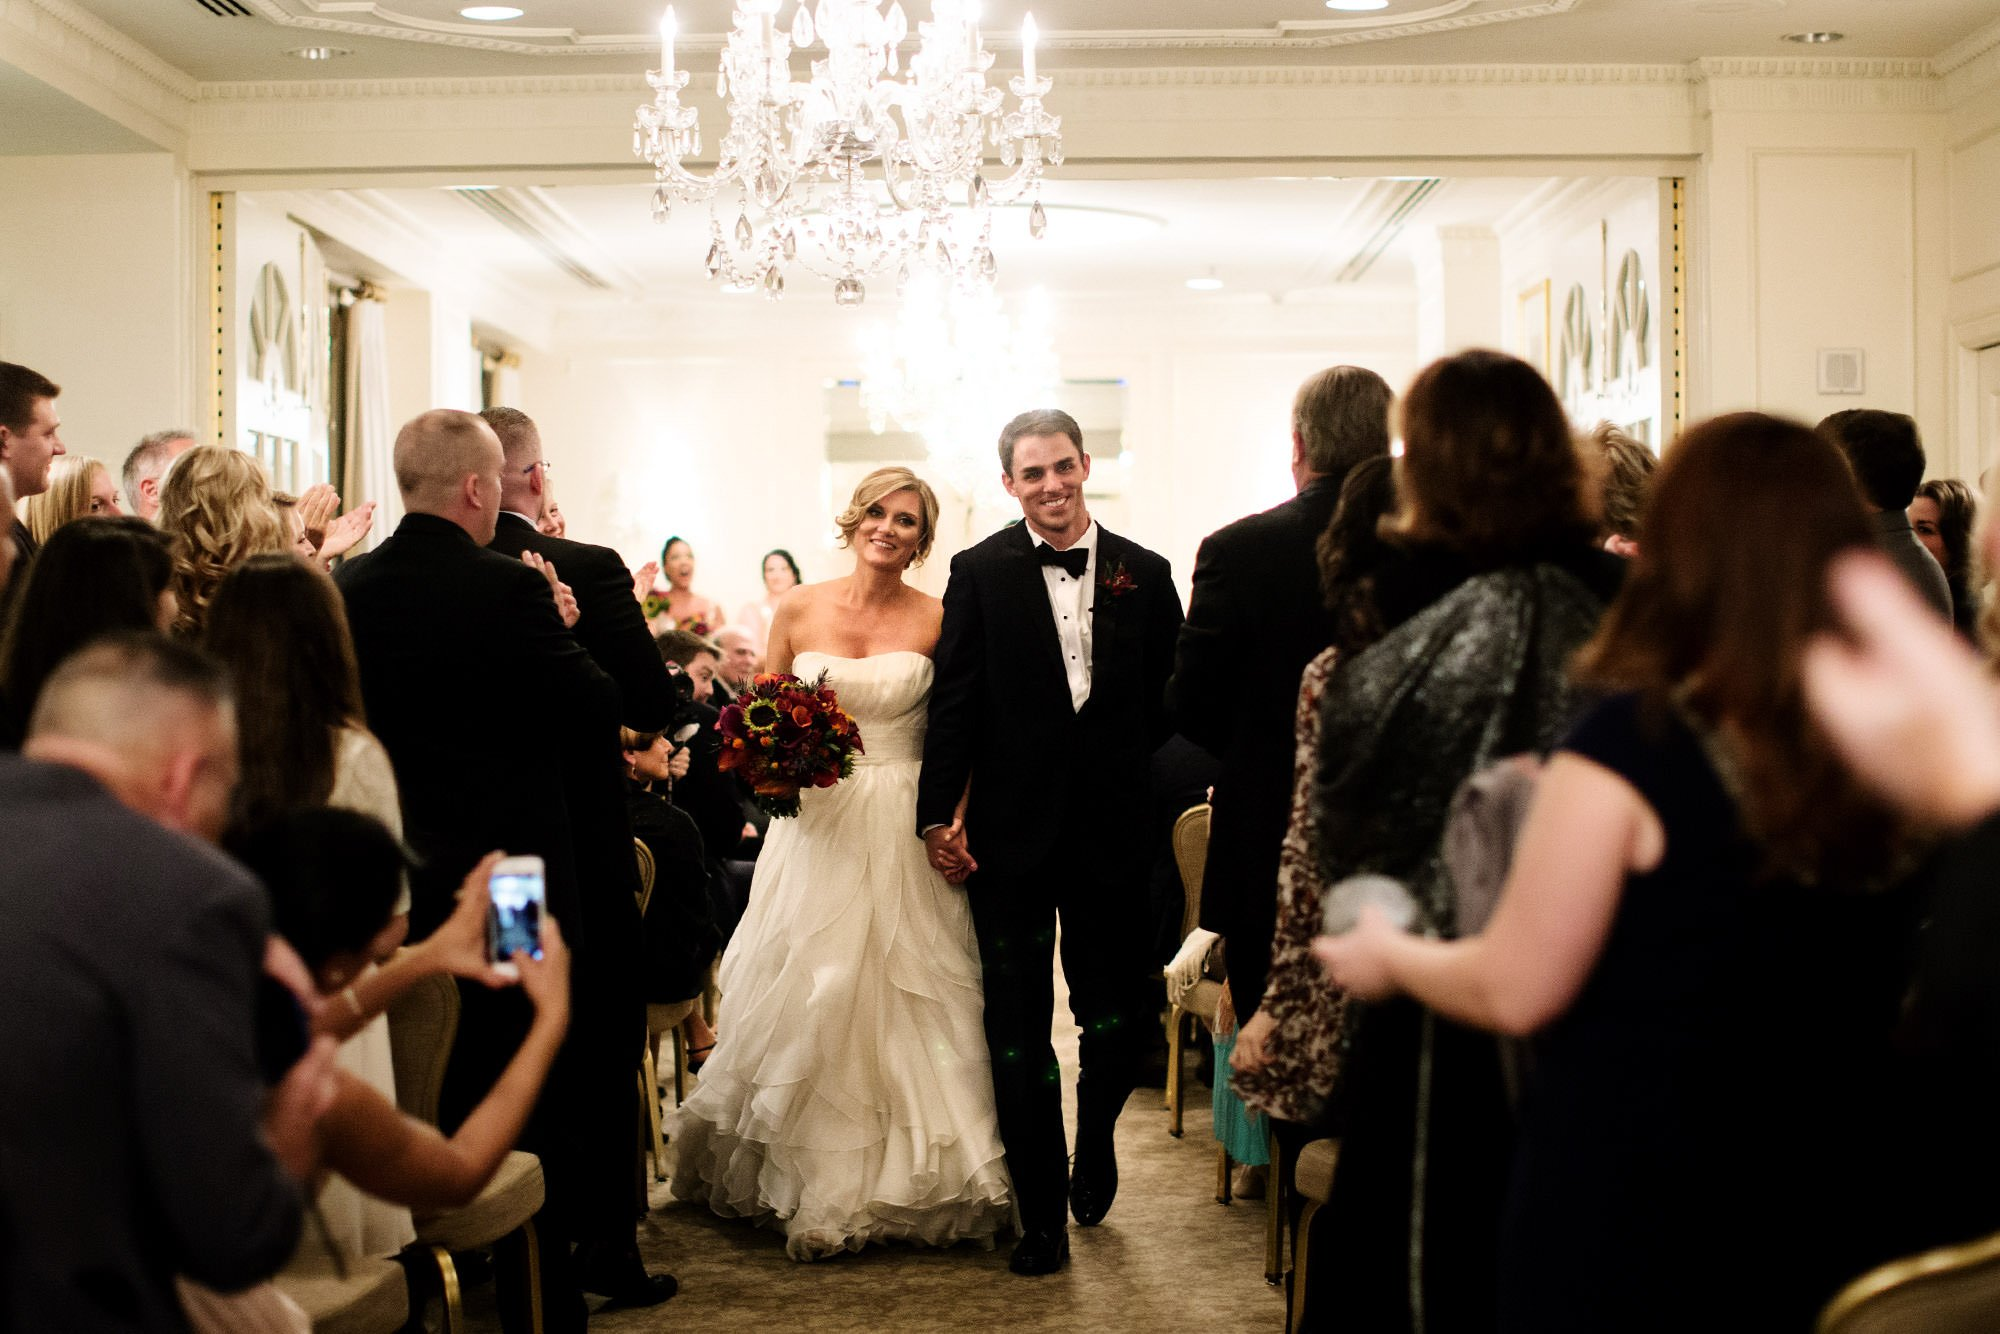 The bride and groom walk down the aisle following their Hay Adams DC Wedding ceremony.